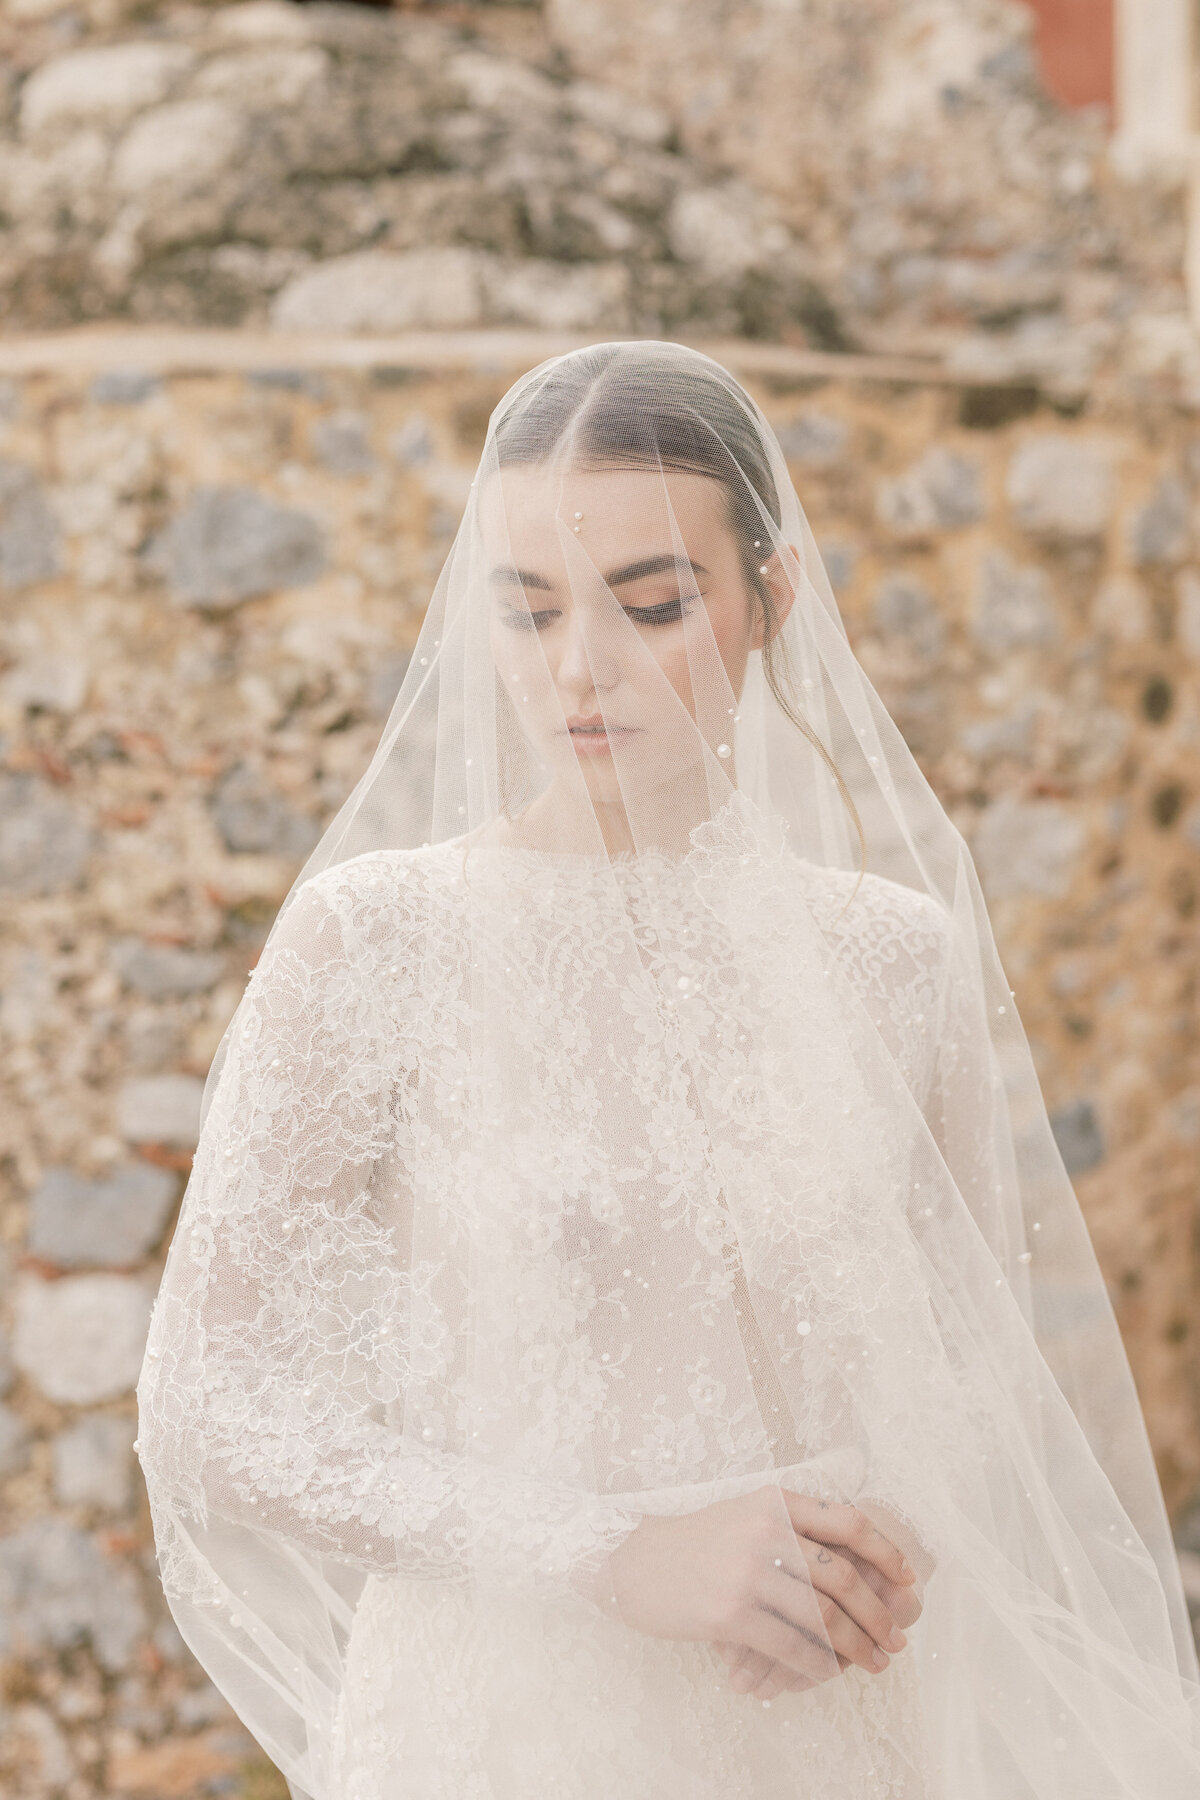 Bridal Portrait Editorial Photoshoot in Greece 7